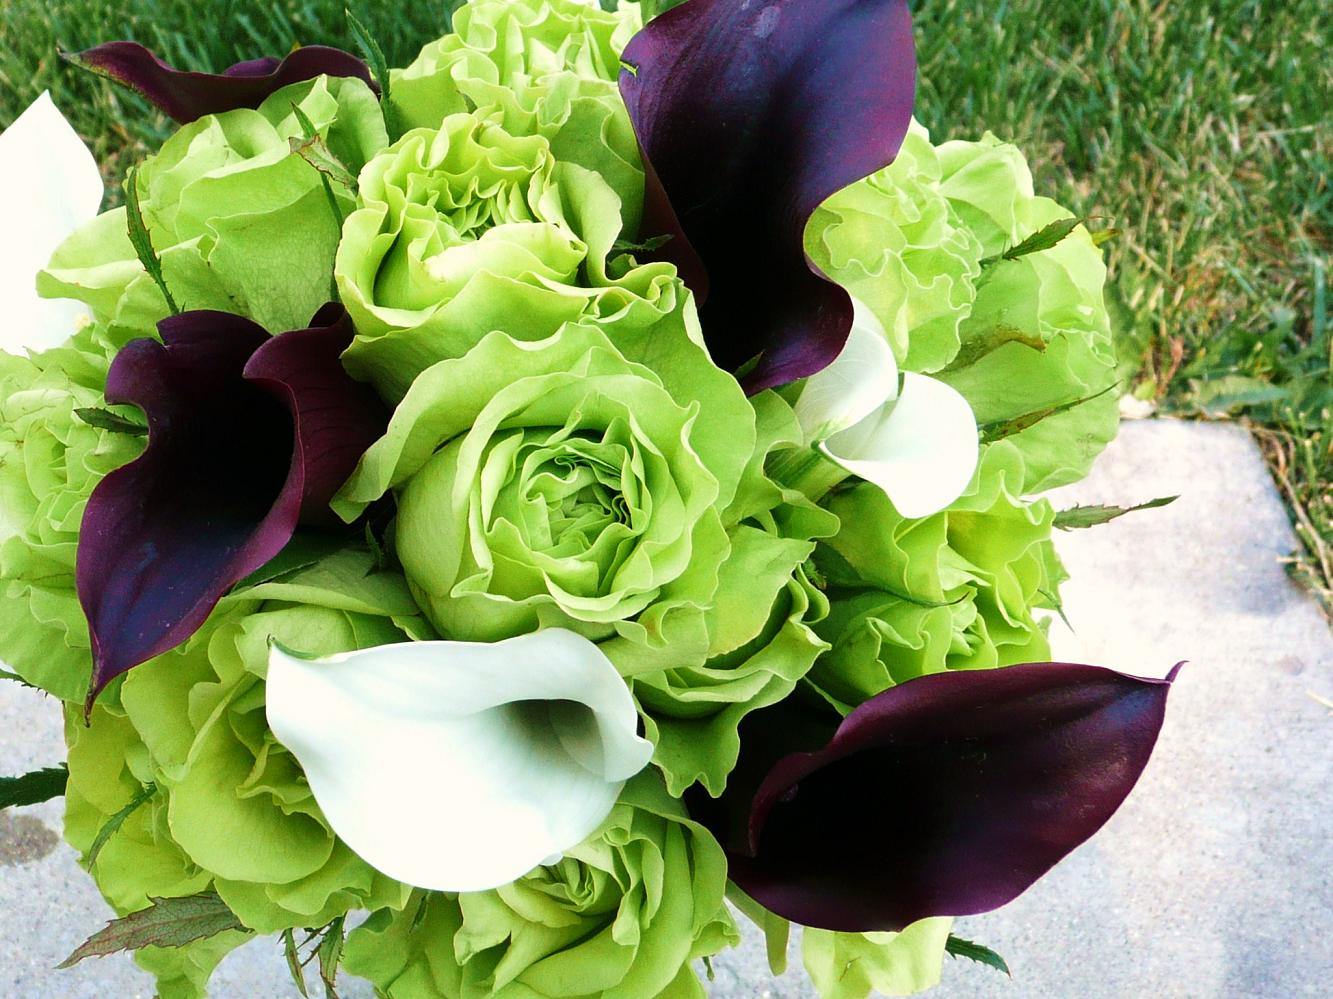 Allinallwalls : Most Beautiful Green Roses In The World